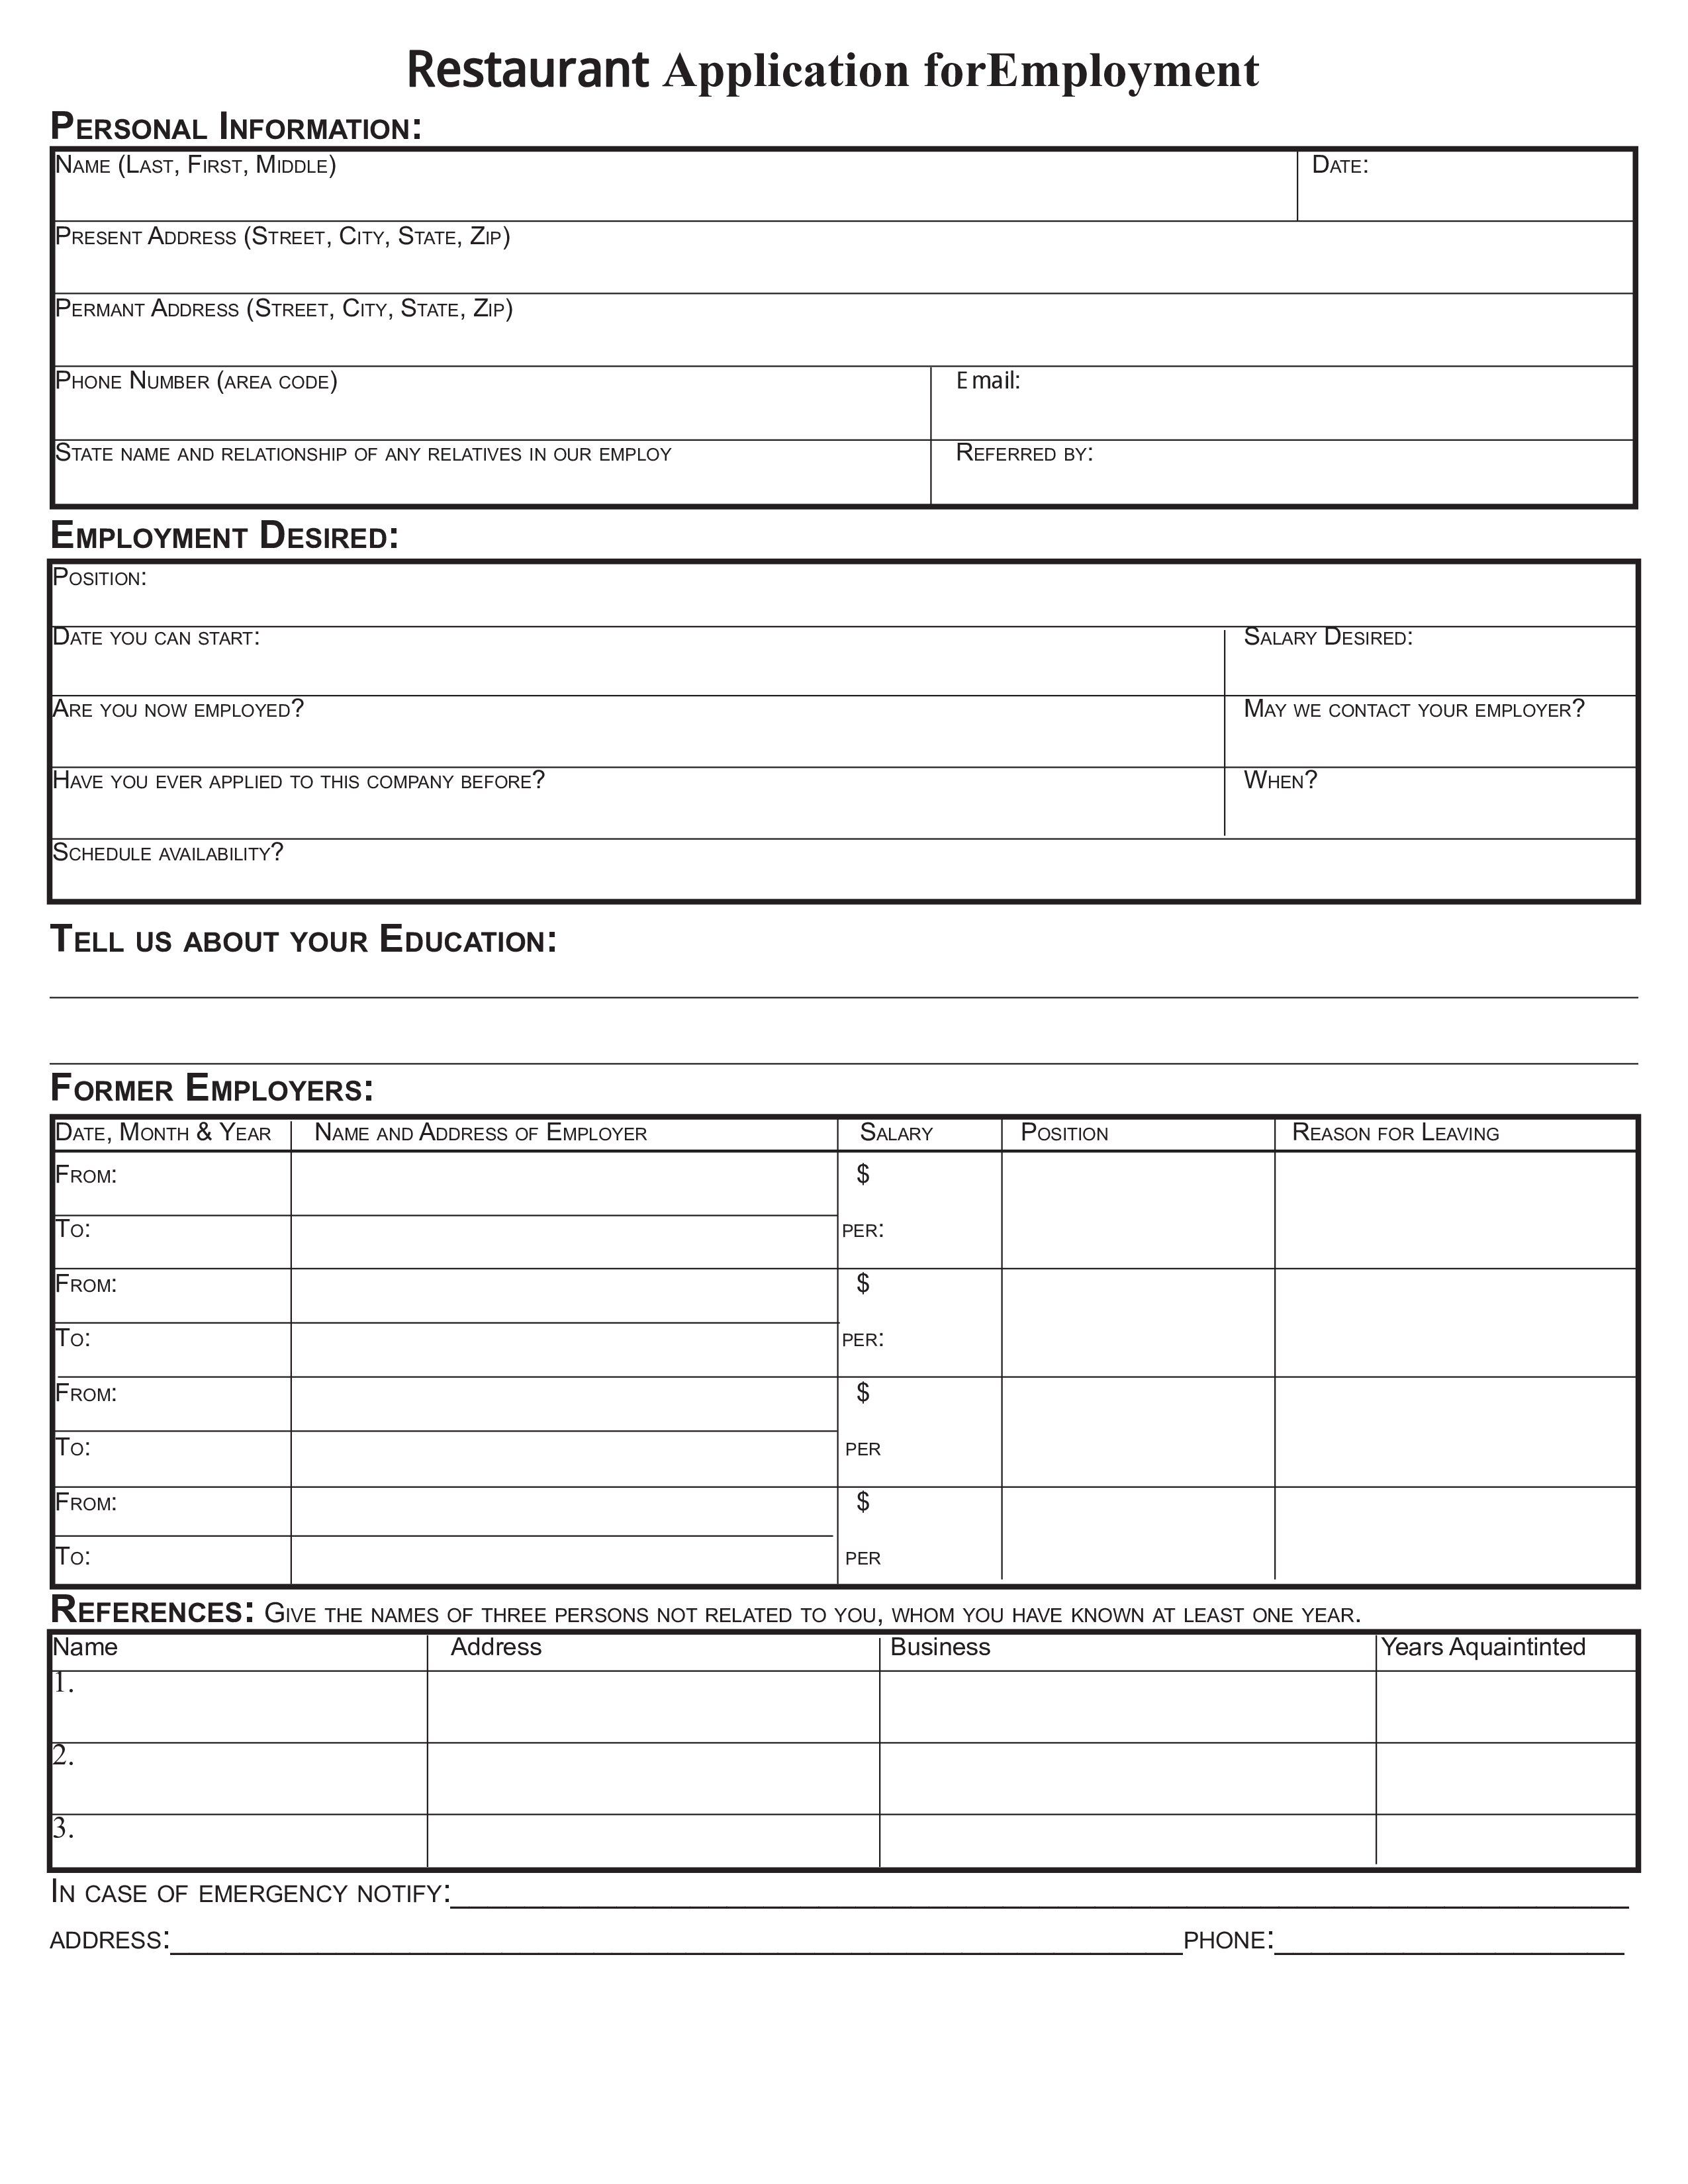 Free restaurant application form for employment templates at restaurant application form for employment main image download template maxwellsz